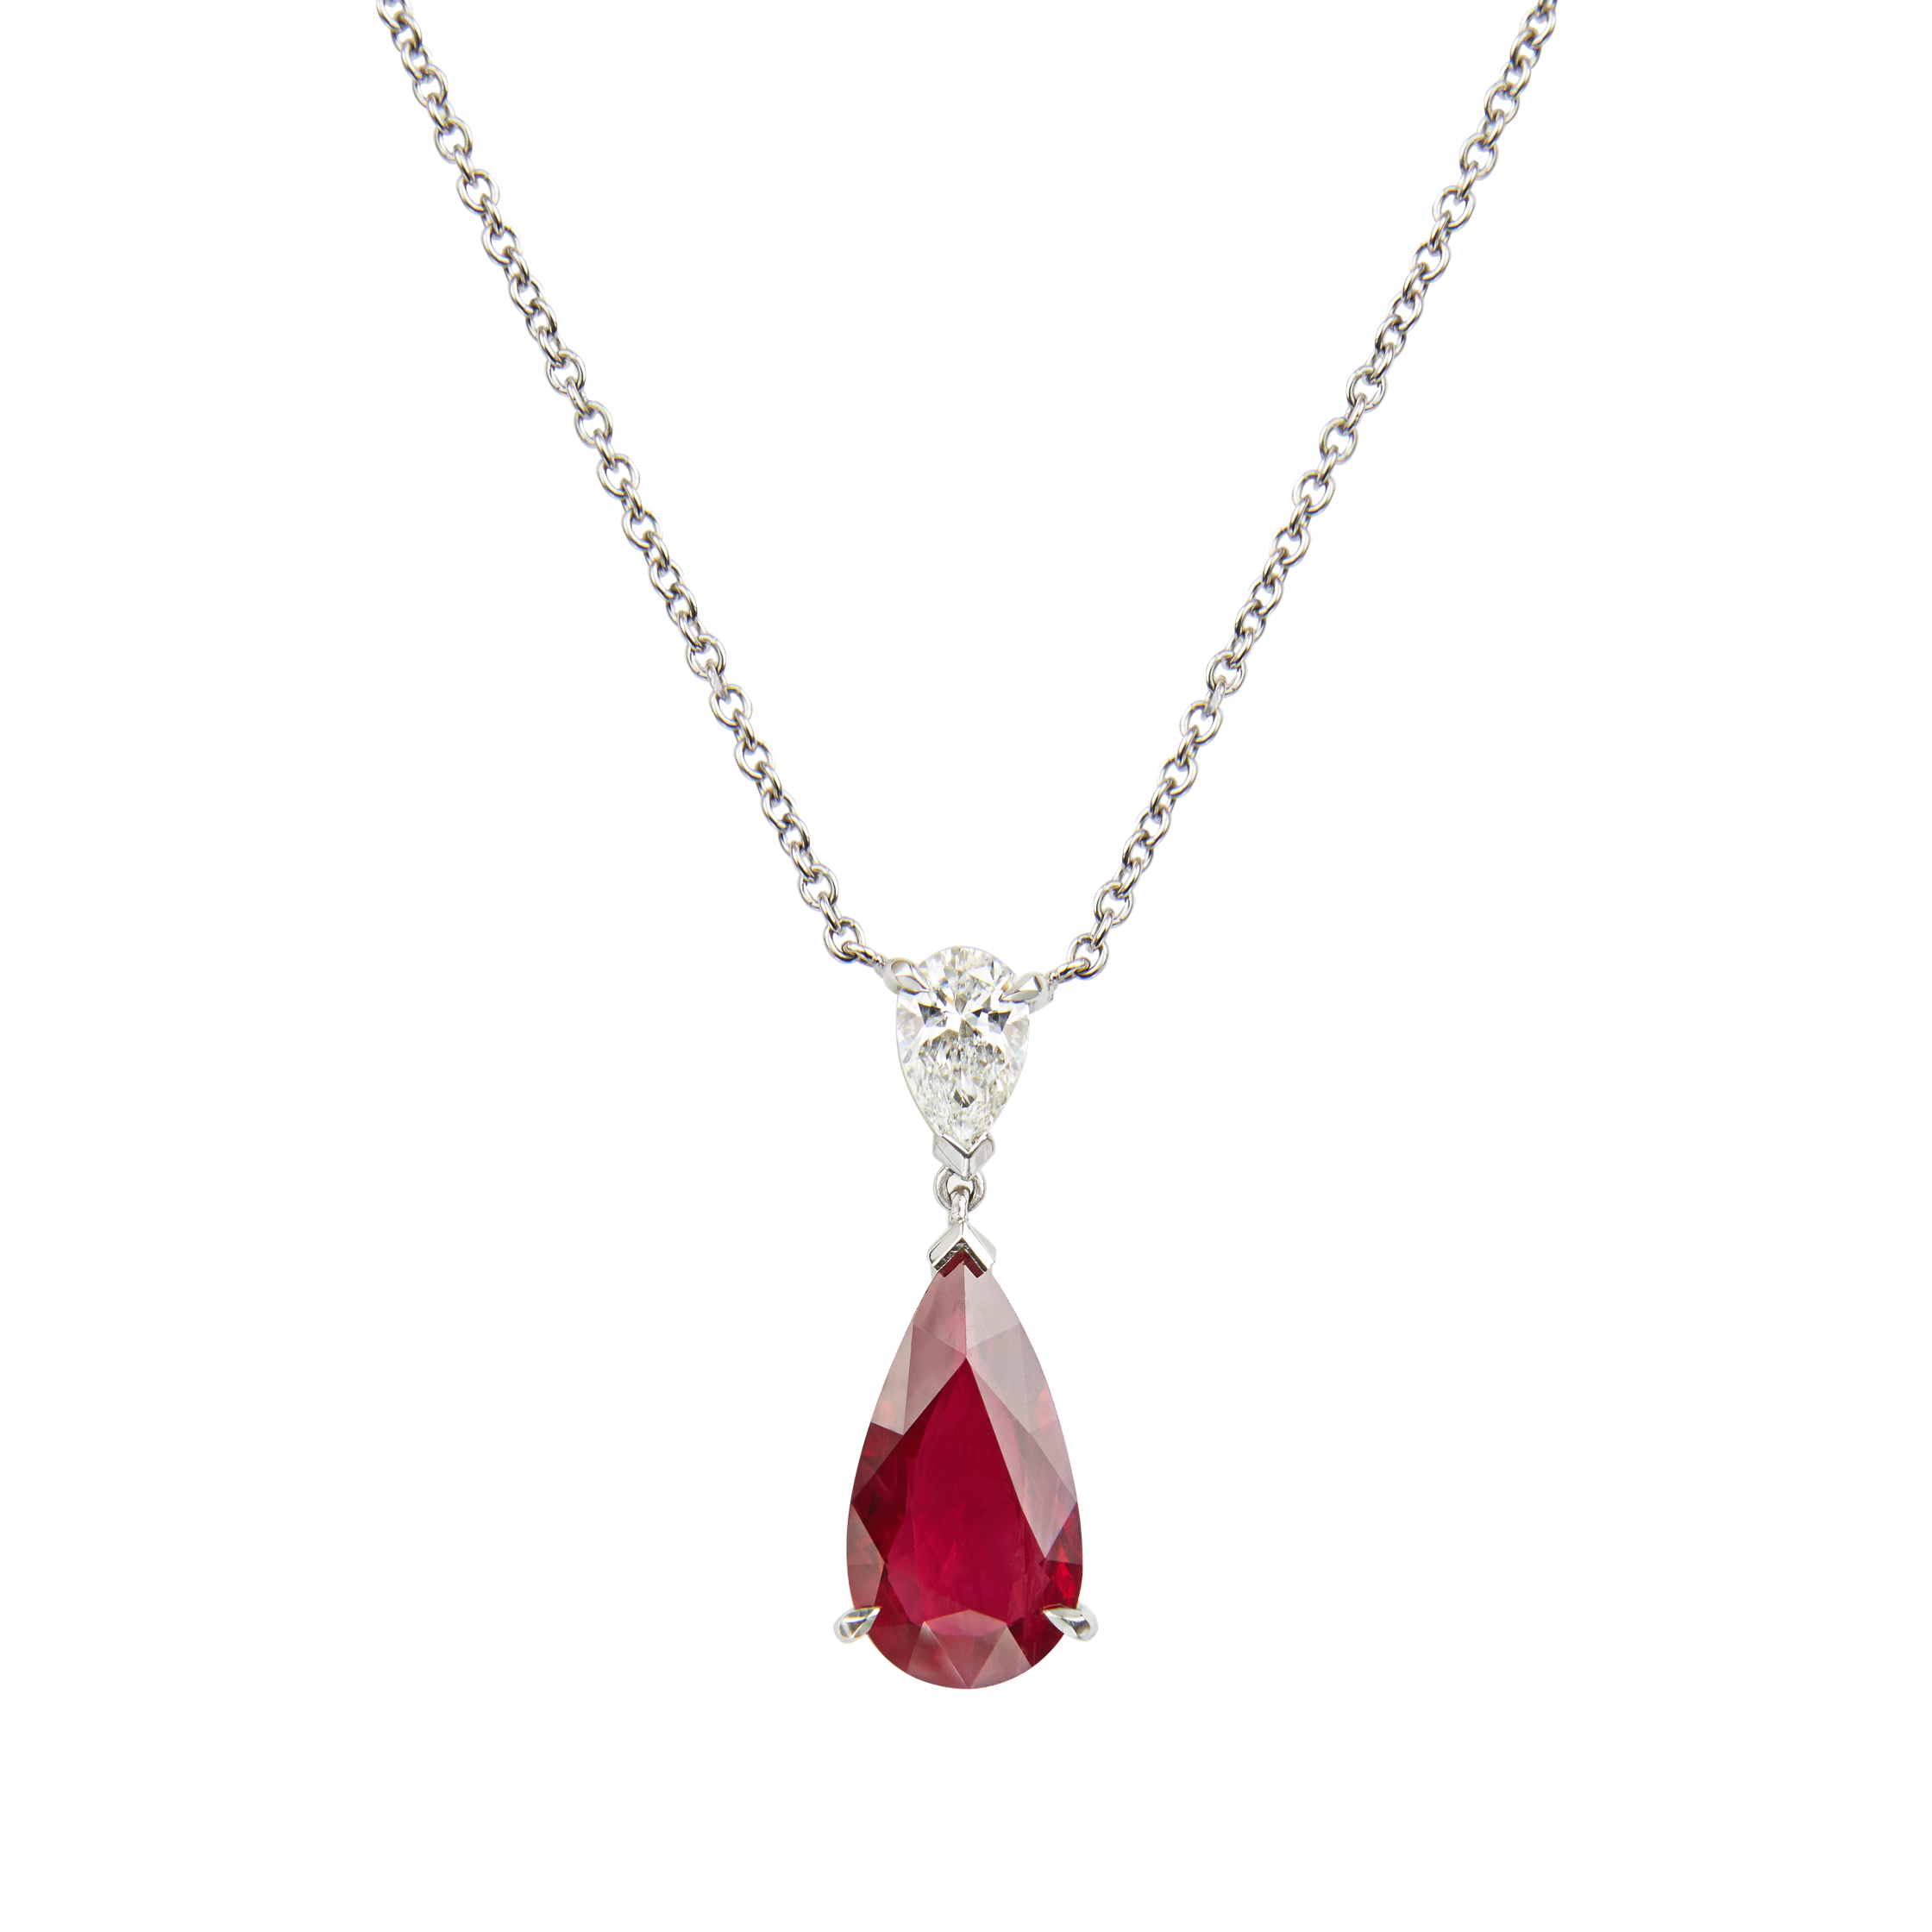 uploads necklace necklace PNG82 3